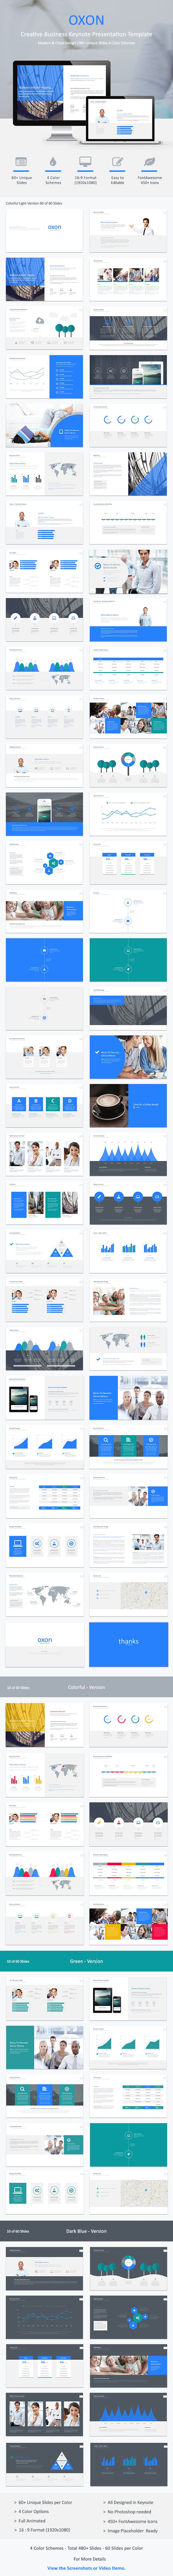 Oxon - Keynote Presentation Template | Buy and Download: http://graphicriver.net/item/oxon-keynote-presentation-template/9634660?ref=ksioks